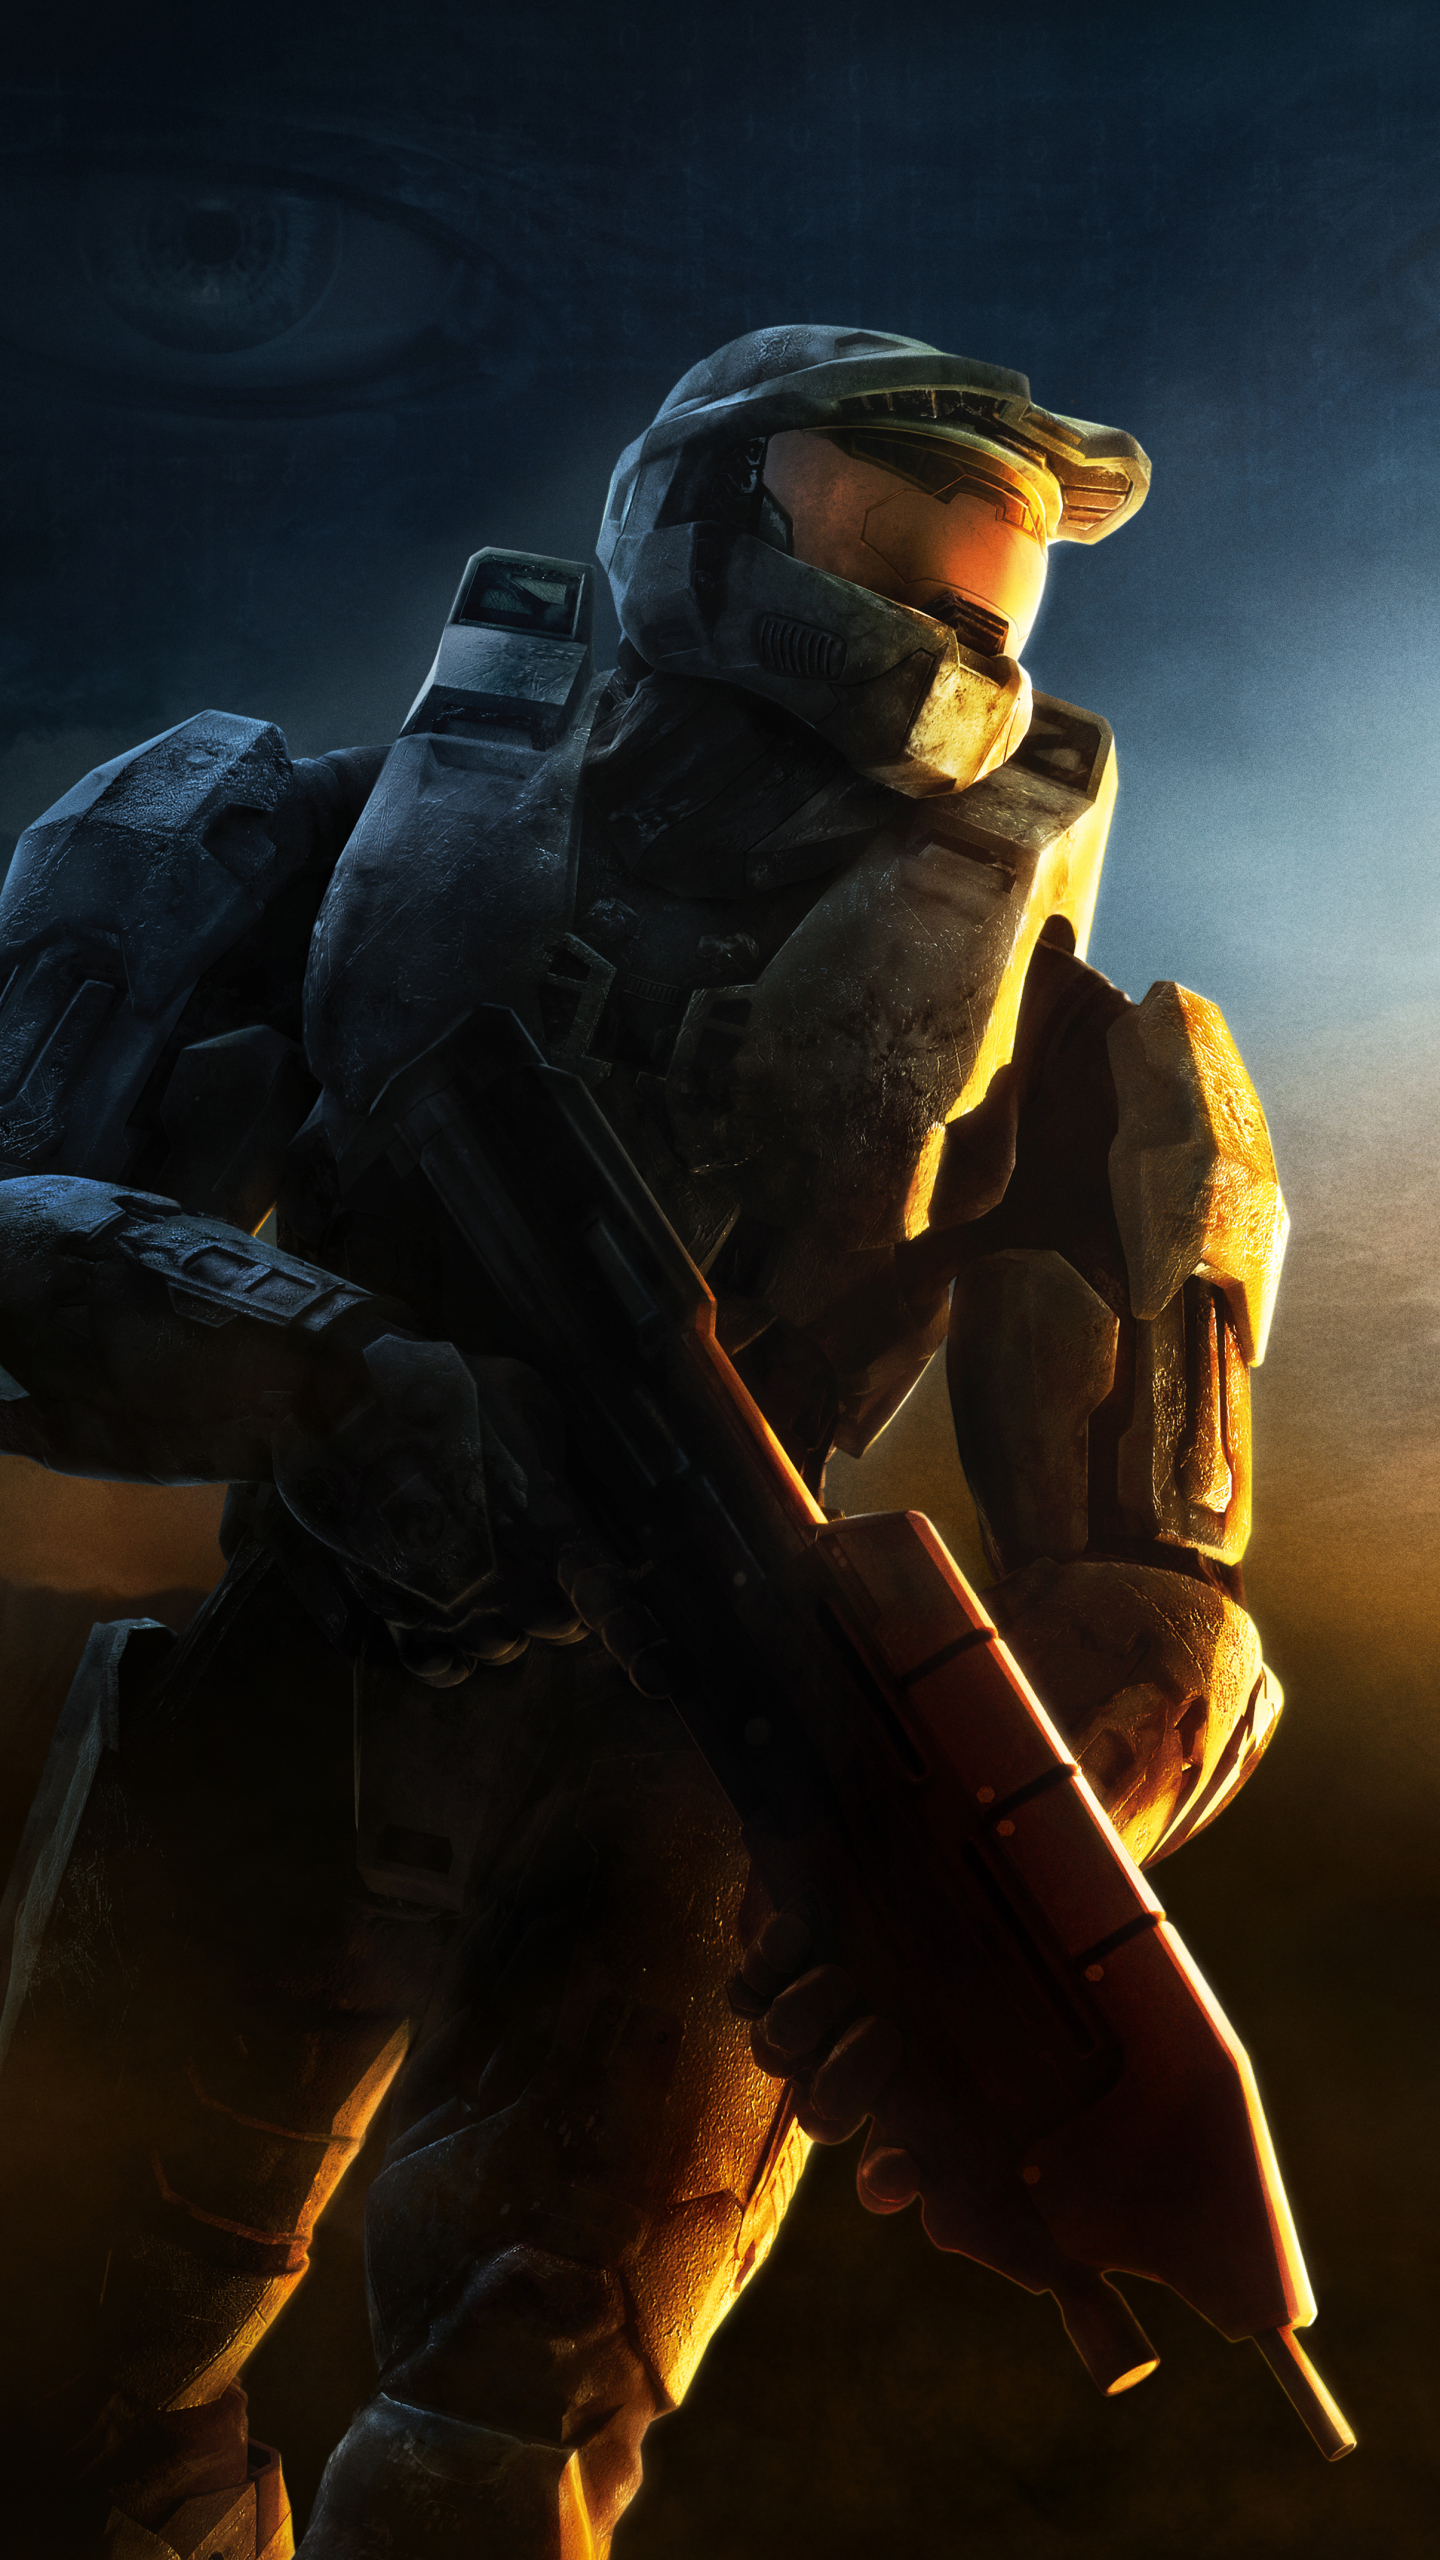 Video Game Halo 3 750x1334 Wallpaper Id 593277 Mobile Abyss